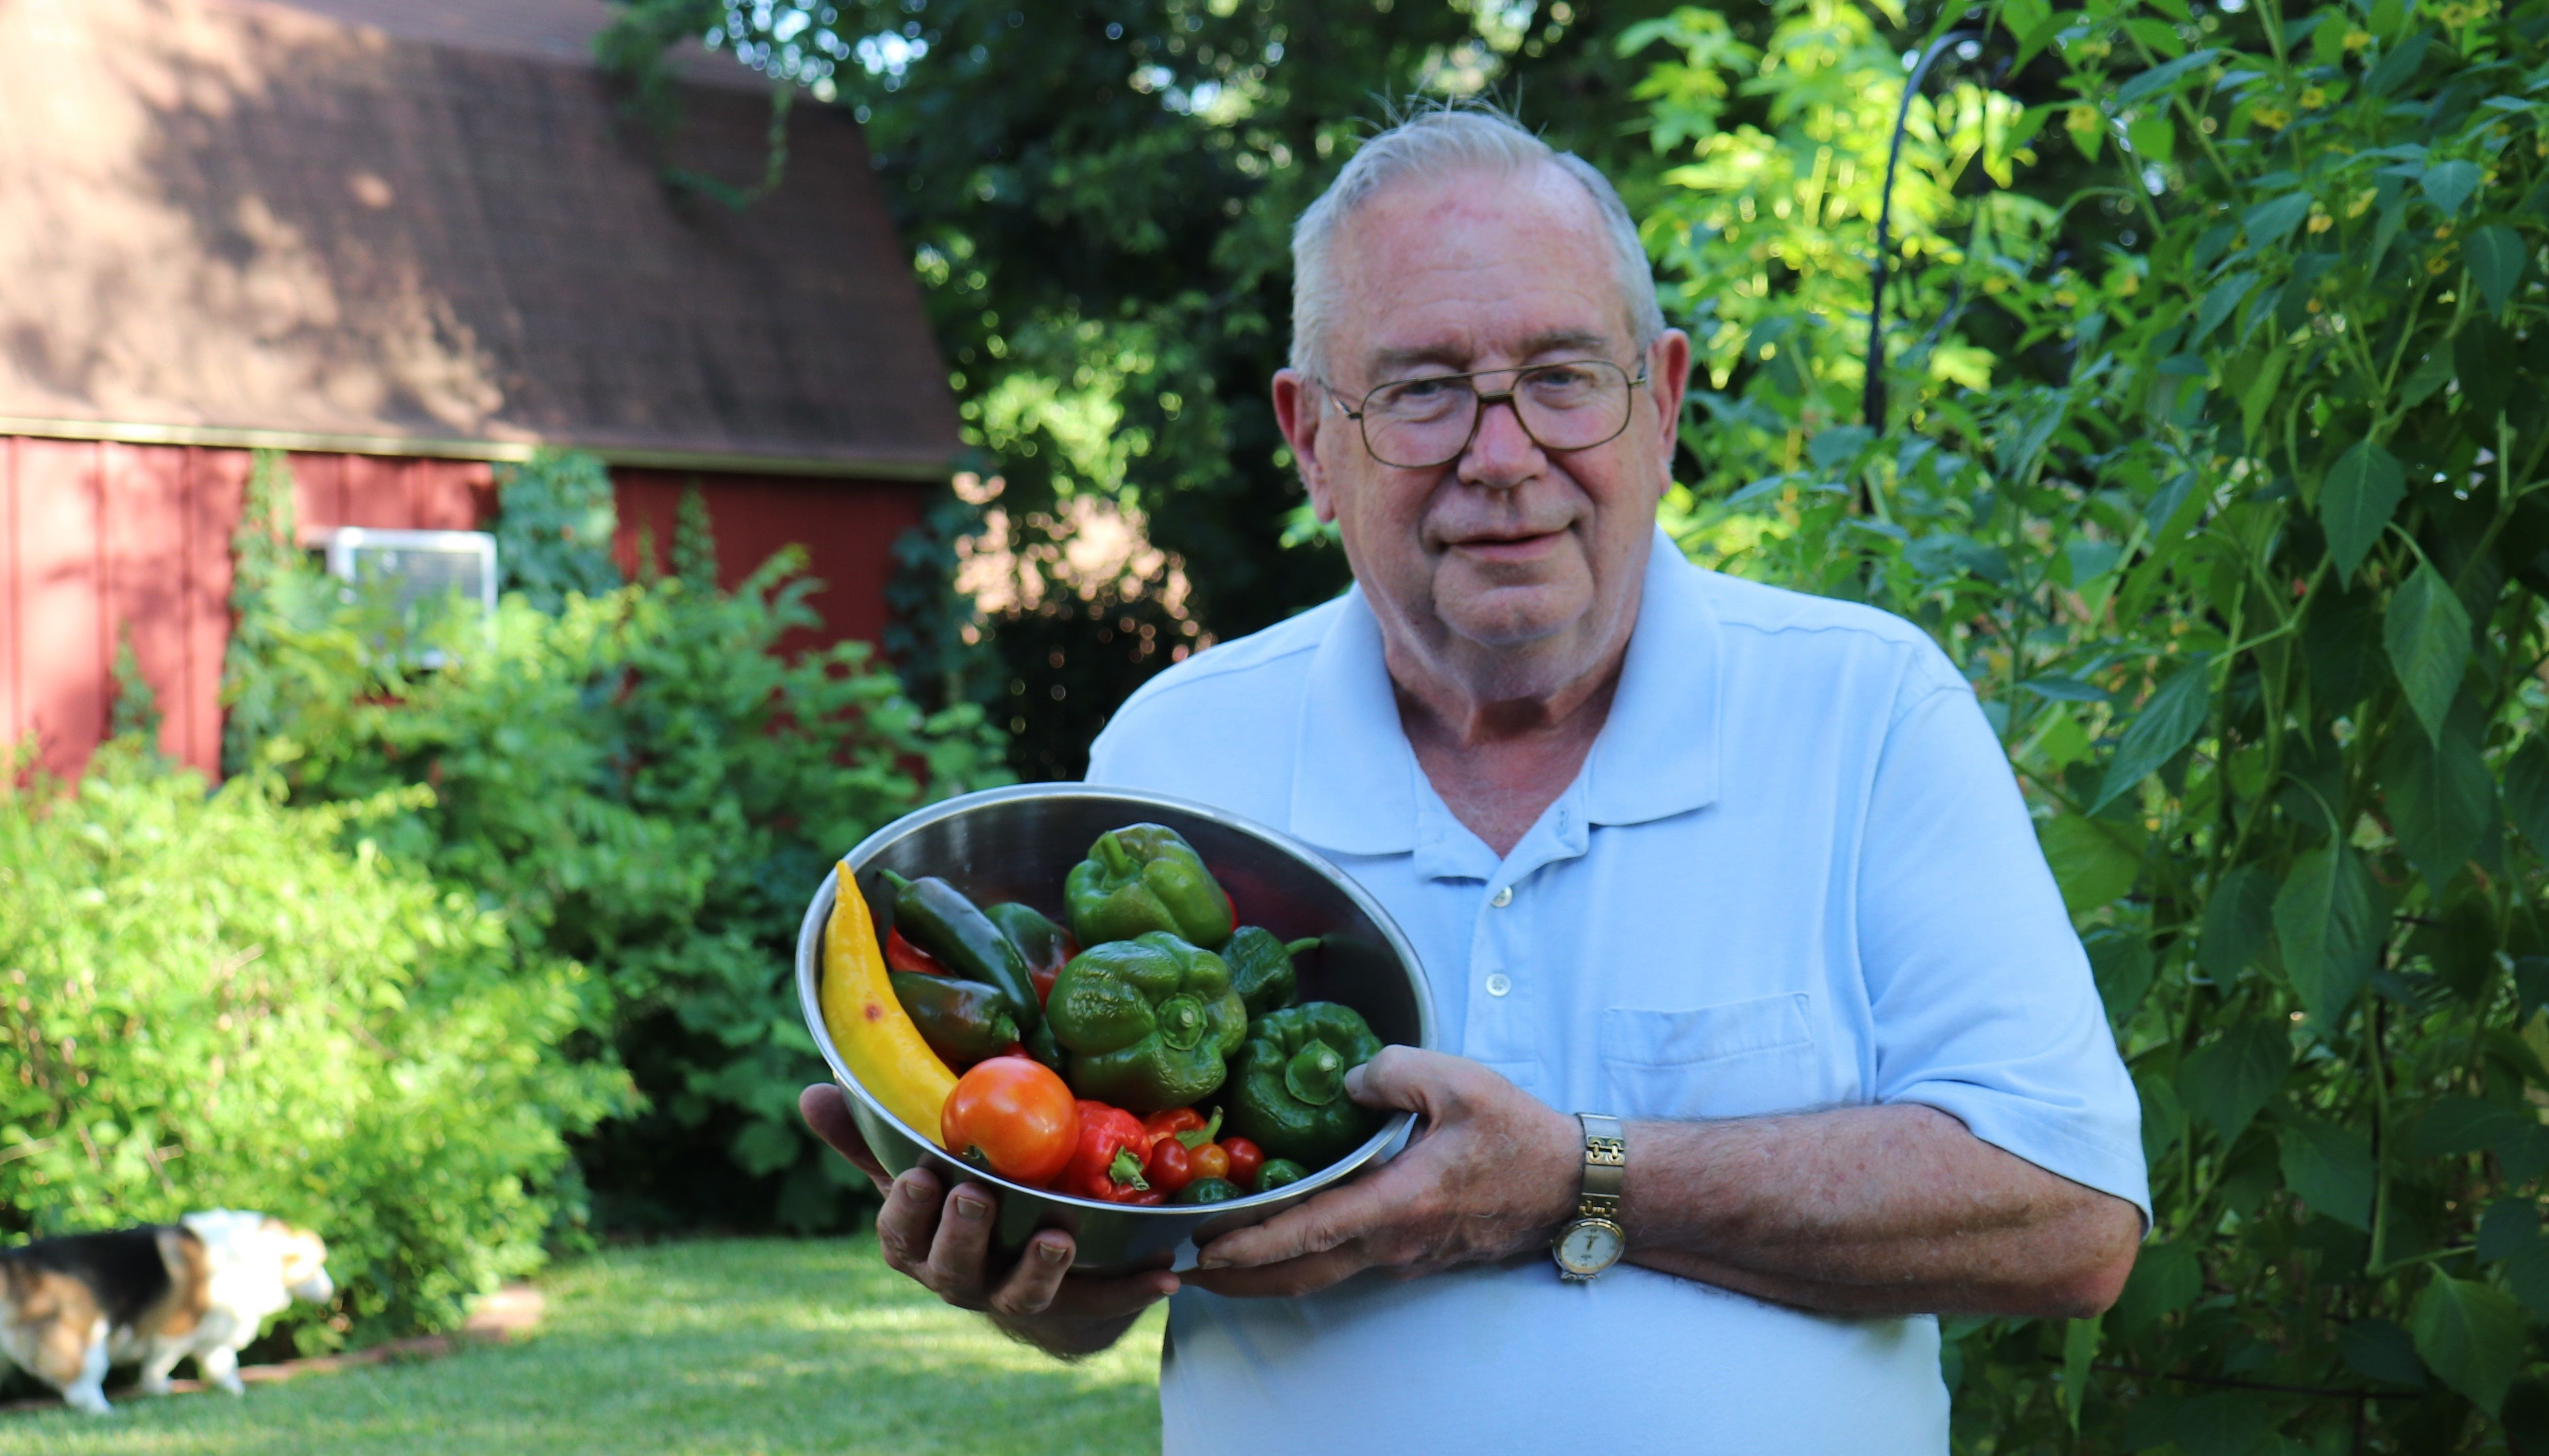 Man with homegrown vegetables